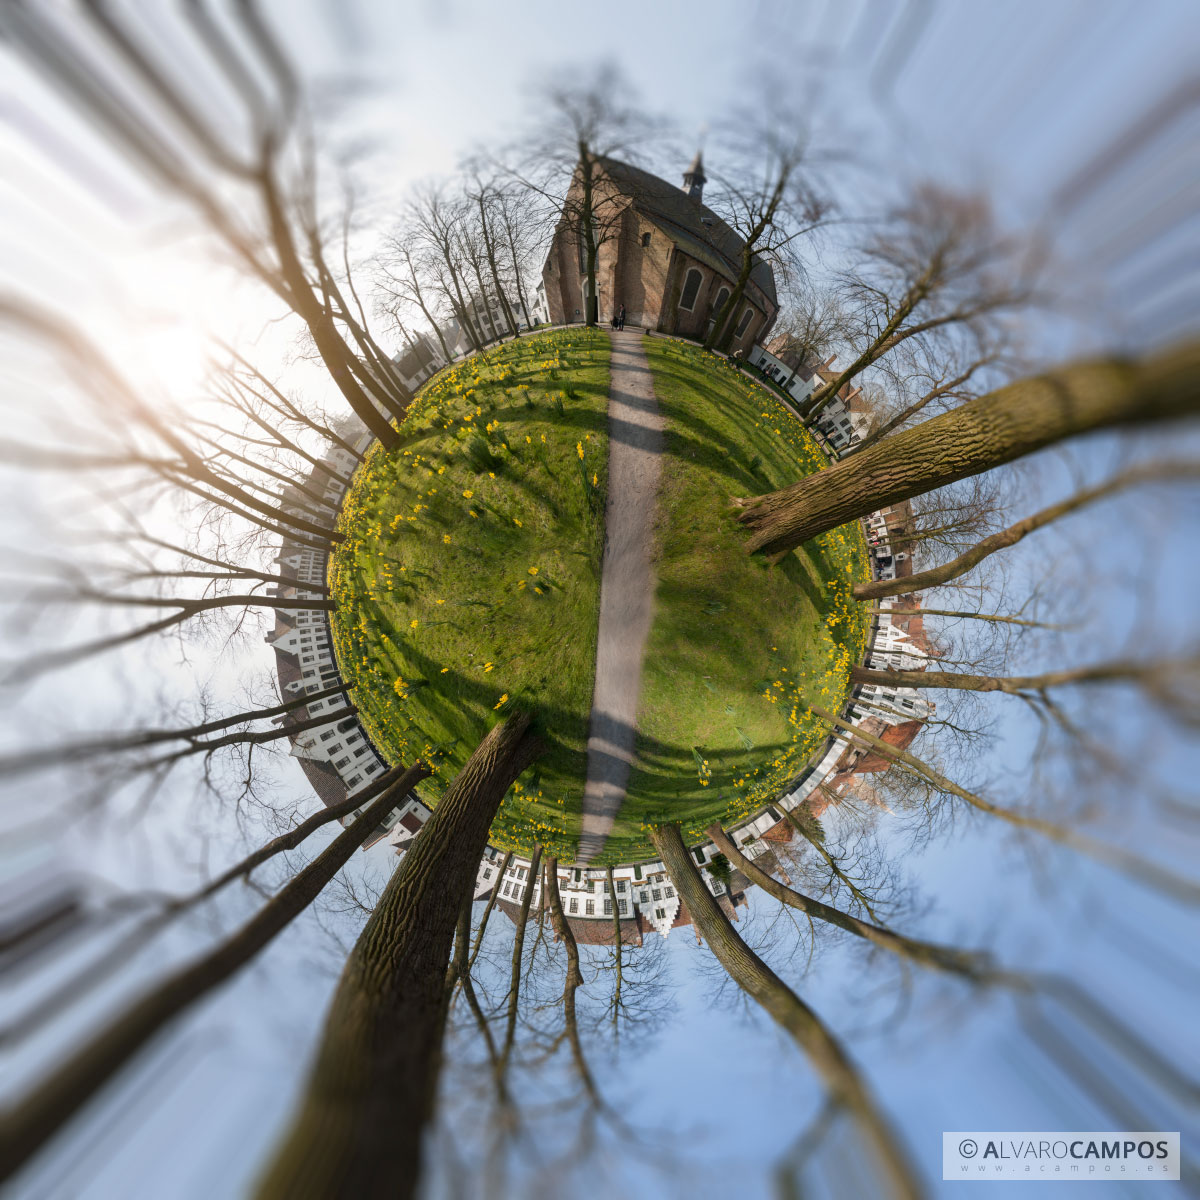 Mini world of a park in Bruges